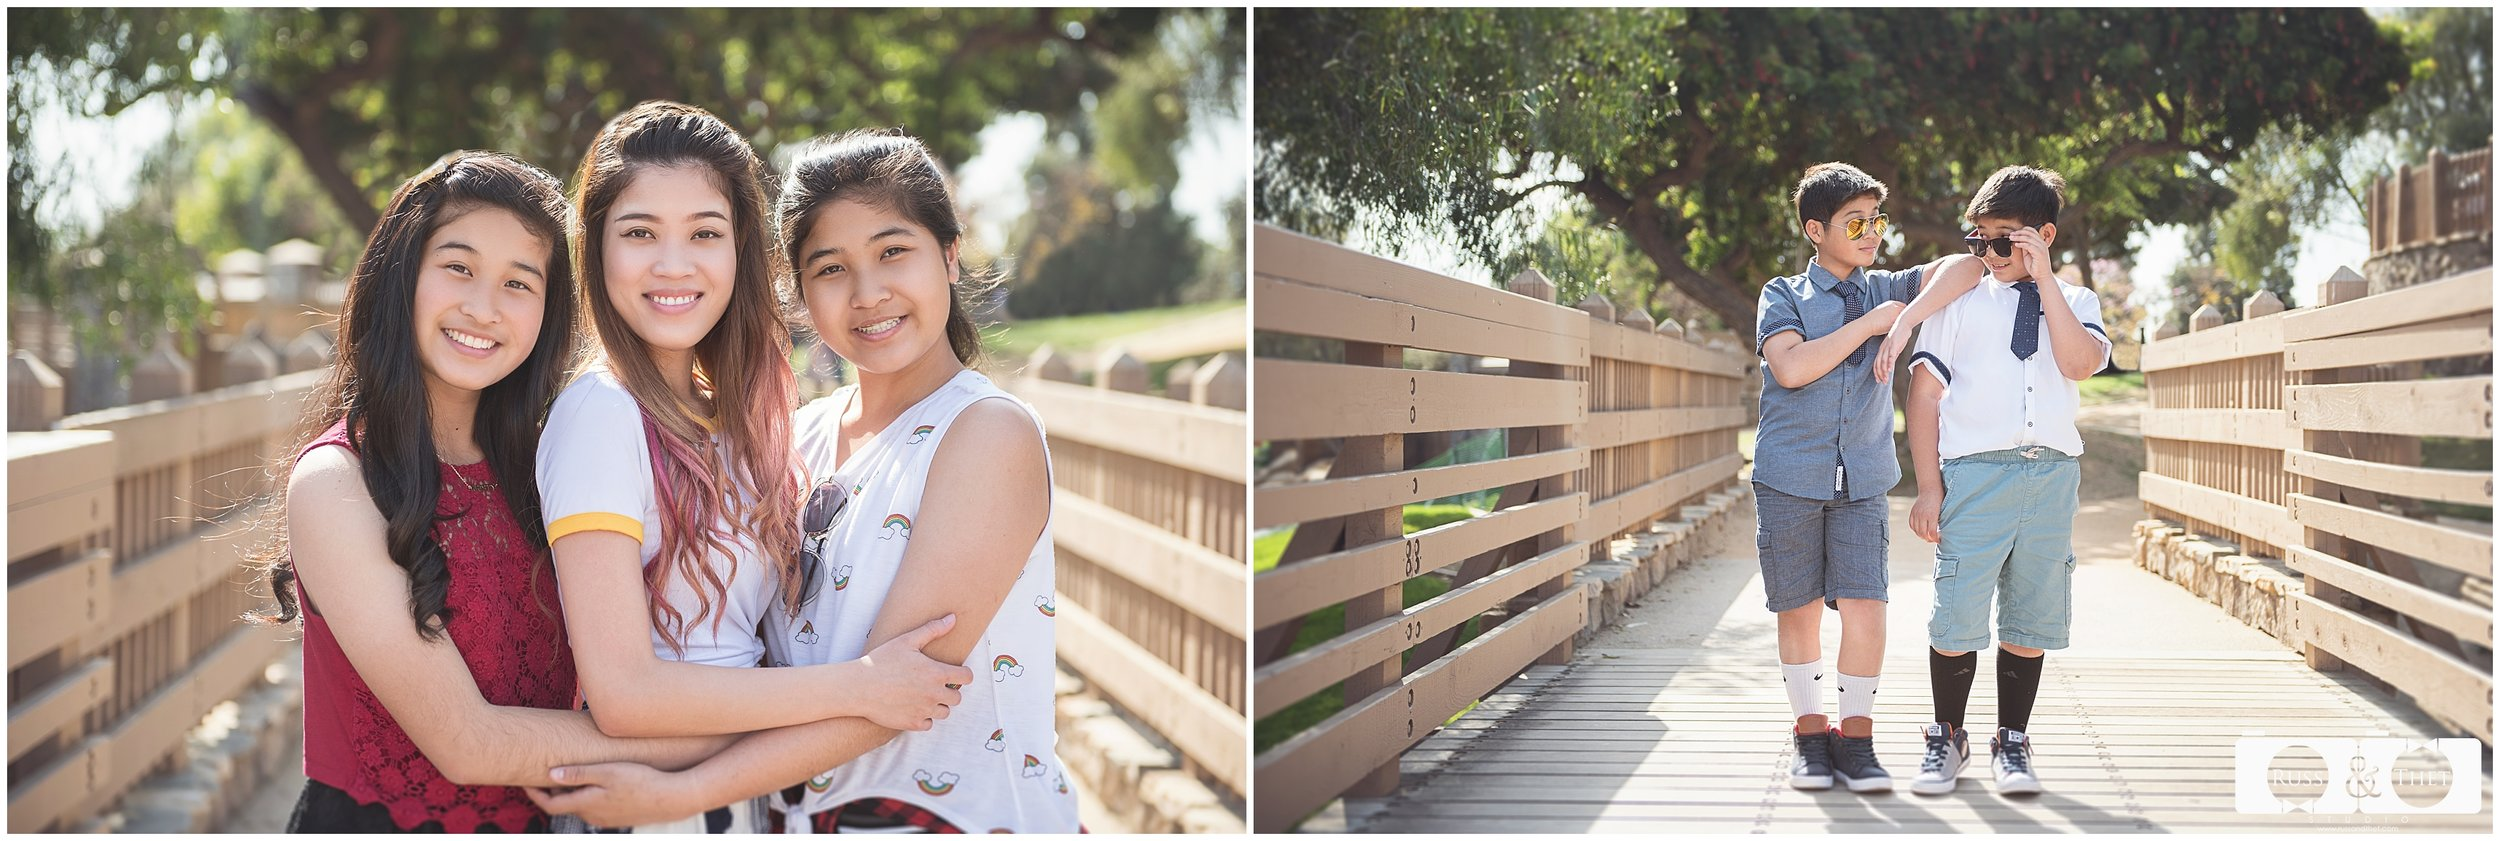 Cerritos-Heritage-Park-Family-Maternity-Kids-Portraits (3).jpg